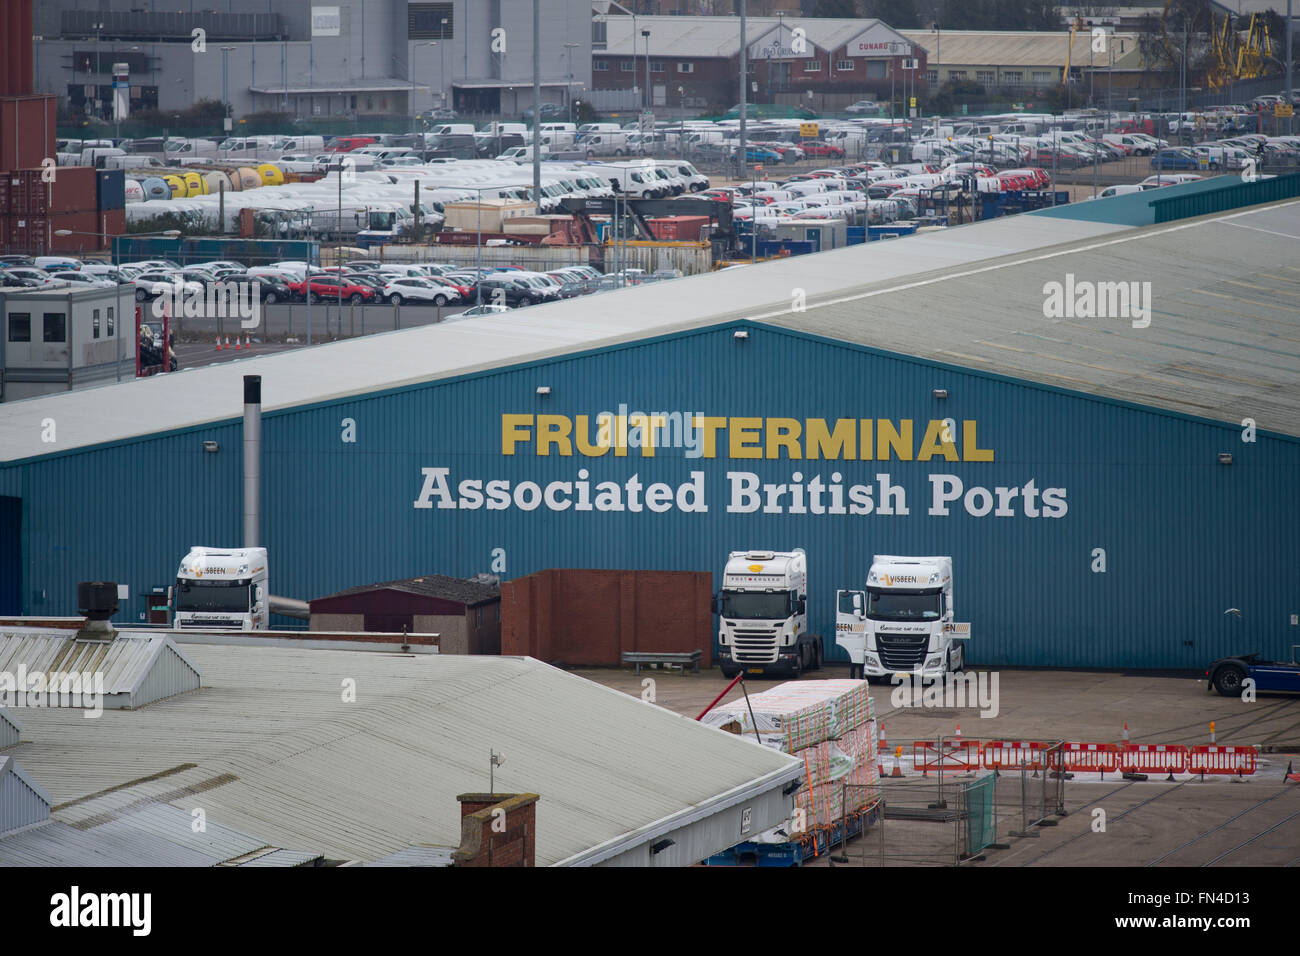 Associated British Ports ABP fruit terminal in Southampton, England. Stock Photo